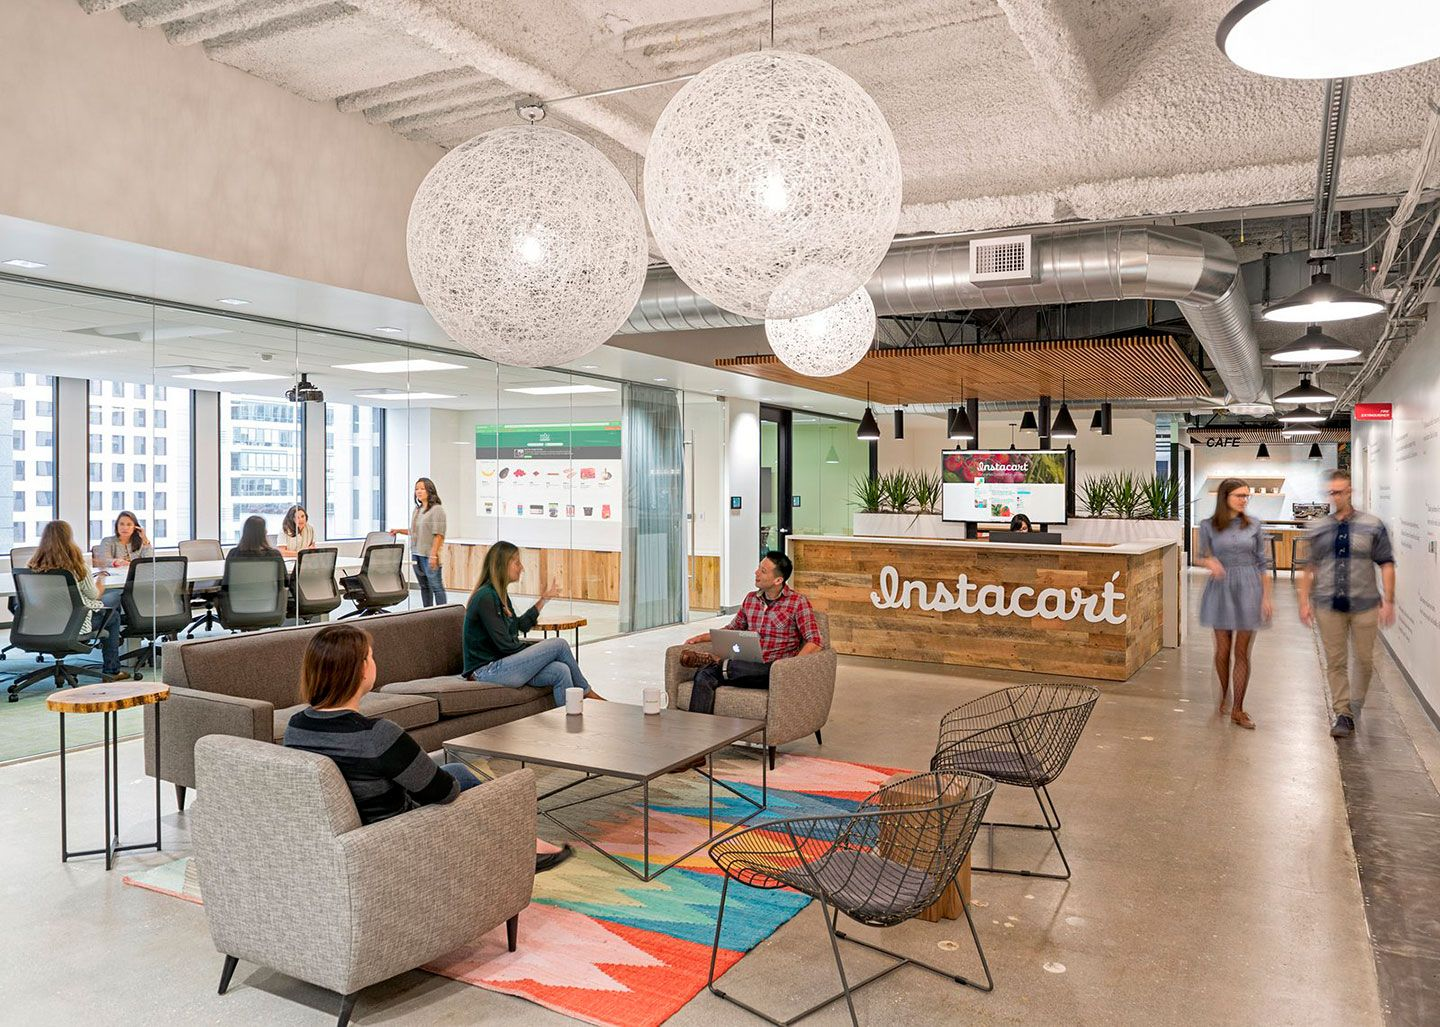 Instacart office in San Francisco by Blitz: http://www.playmagazine.info/instacart-office-in-san-francisco-by-blitz/